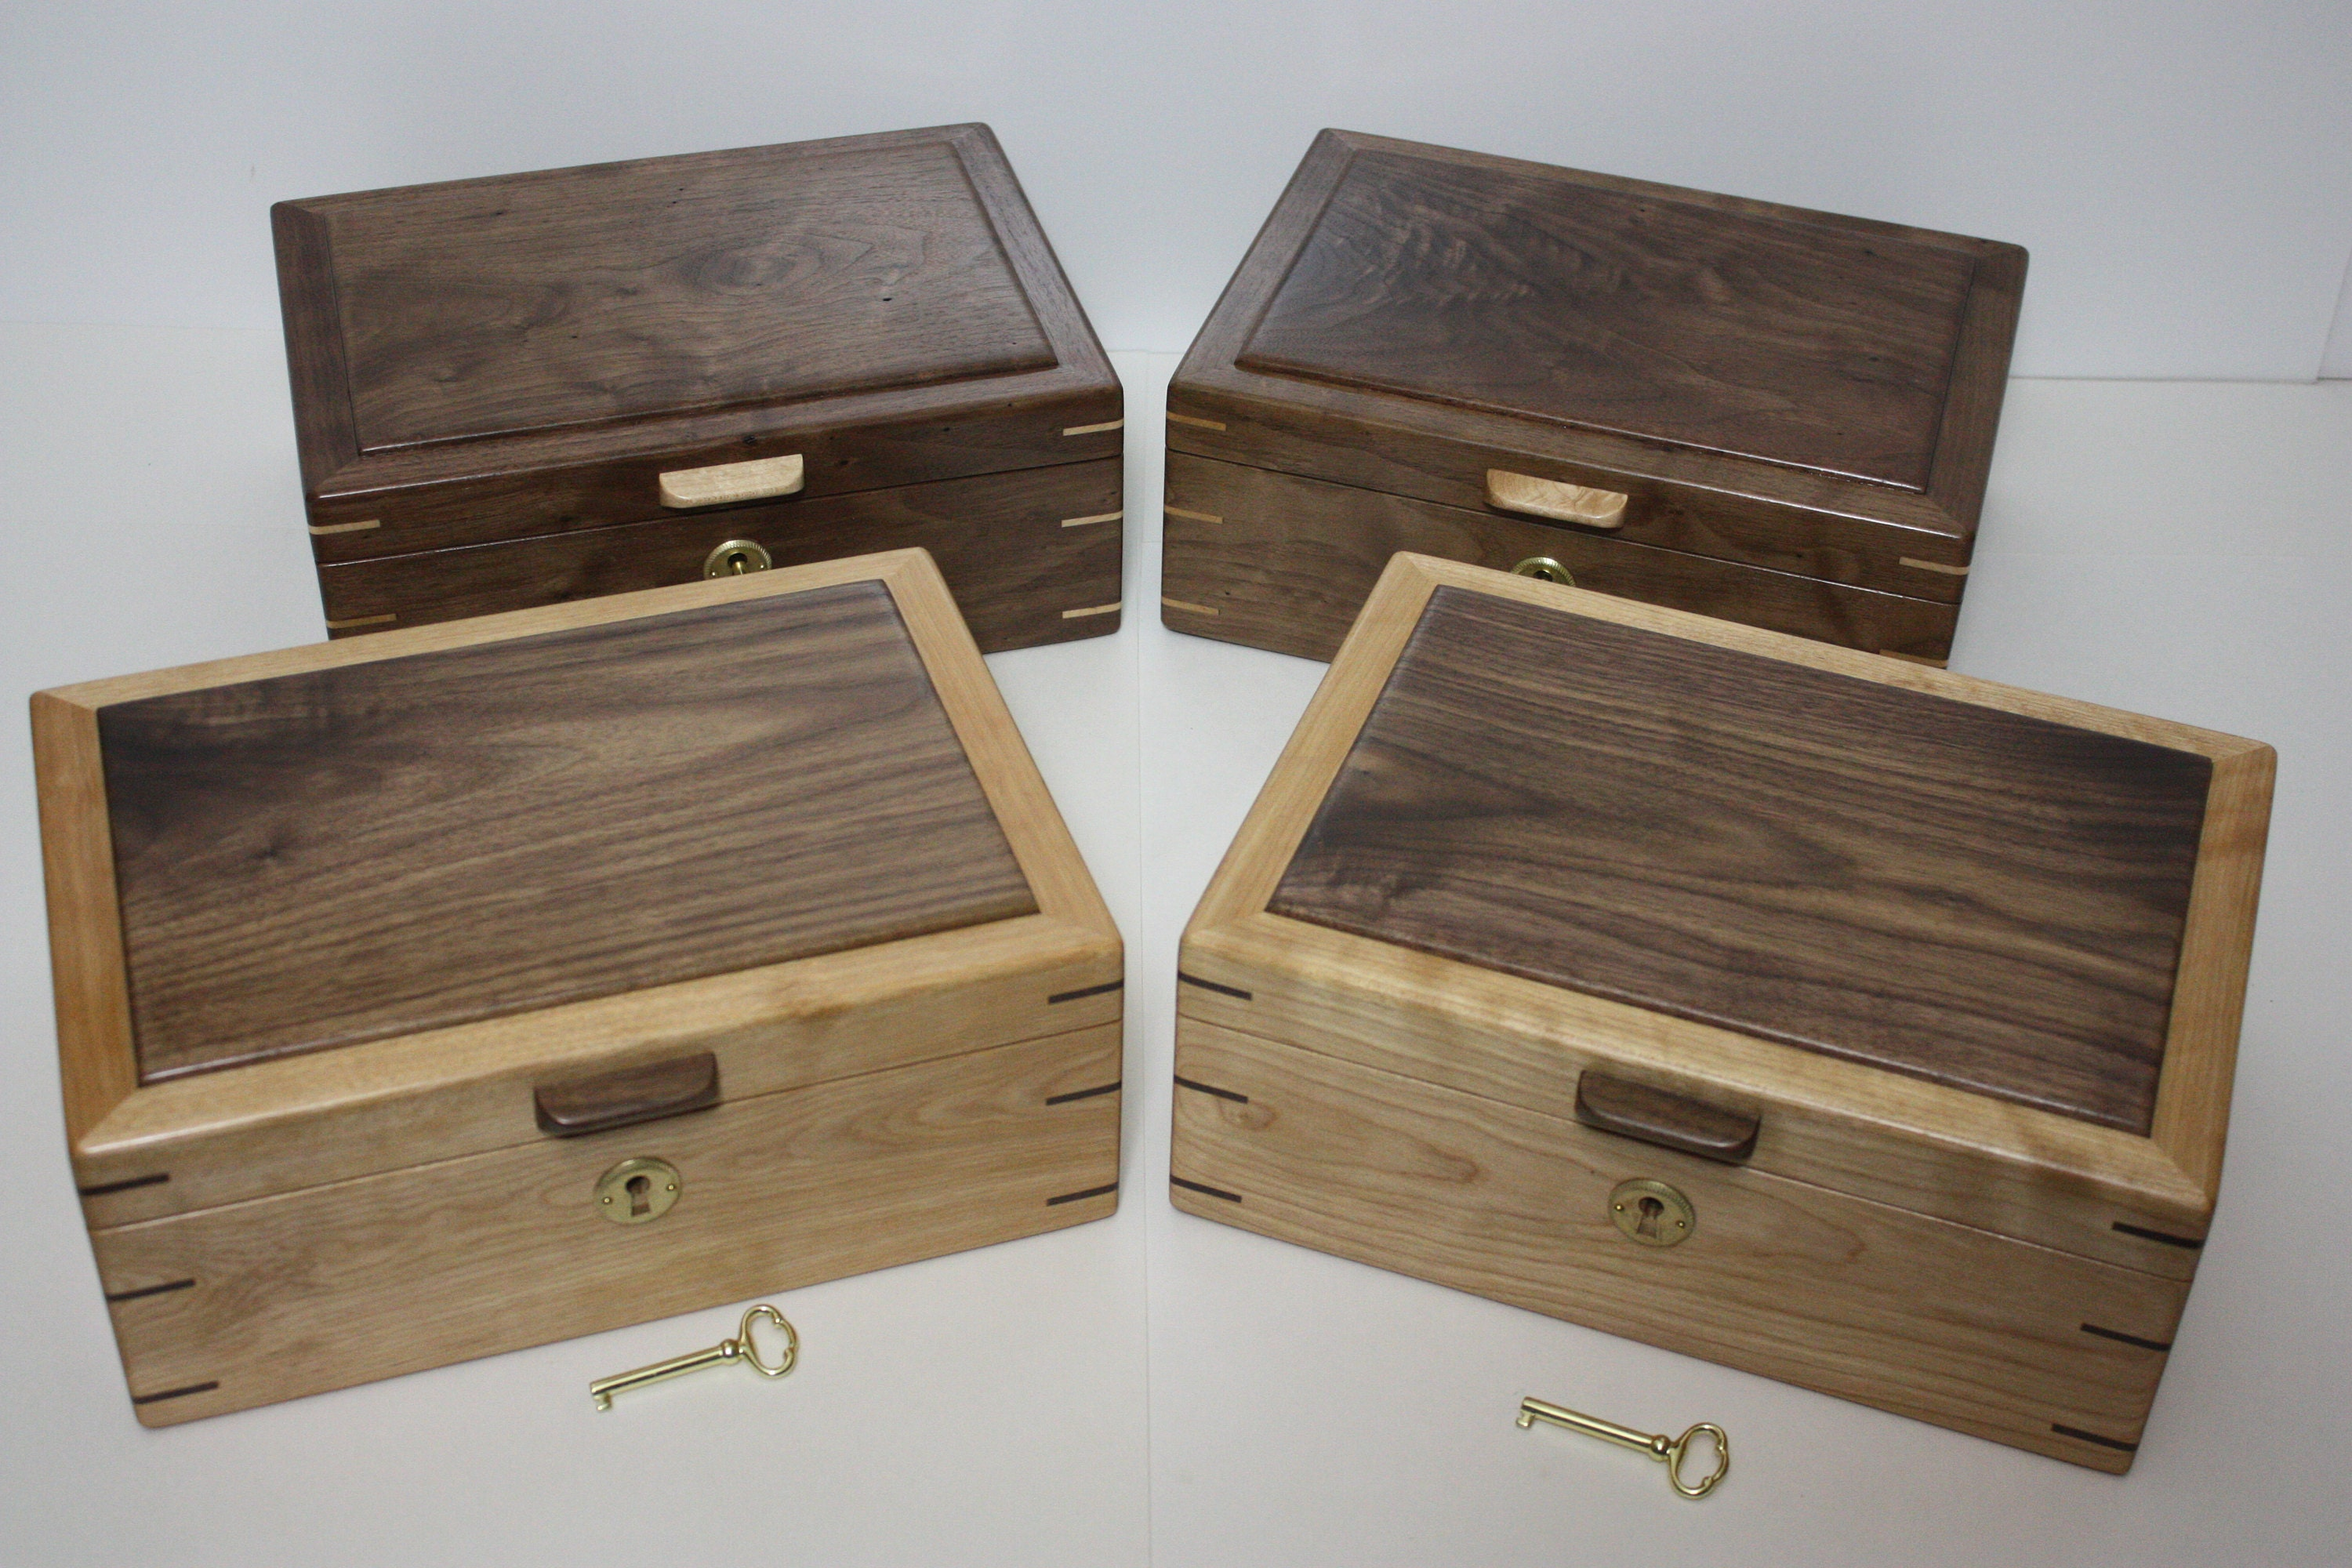 walnut box for sale red birch box for sale wood box for sale locking wood box handmade wood box large wood box wood box with tray menu0027s valet box